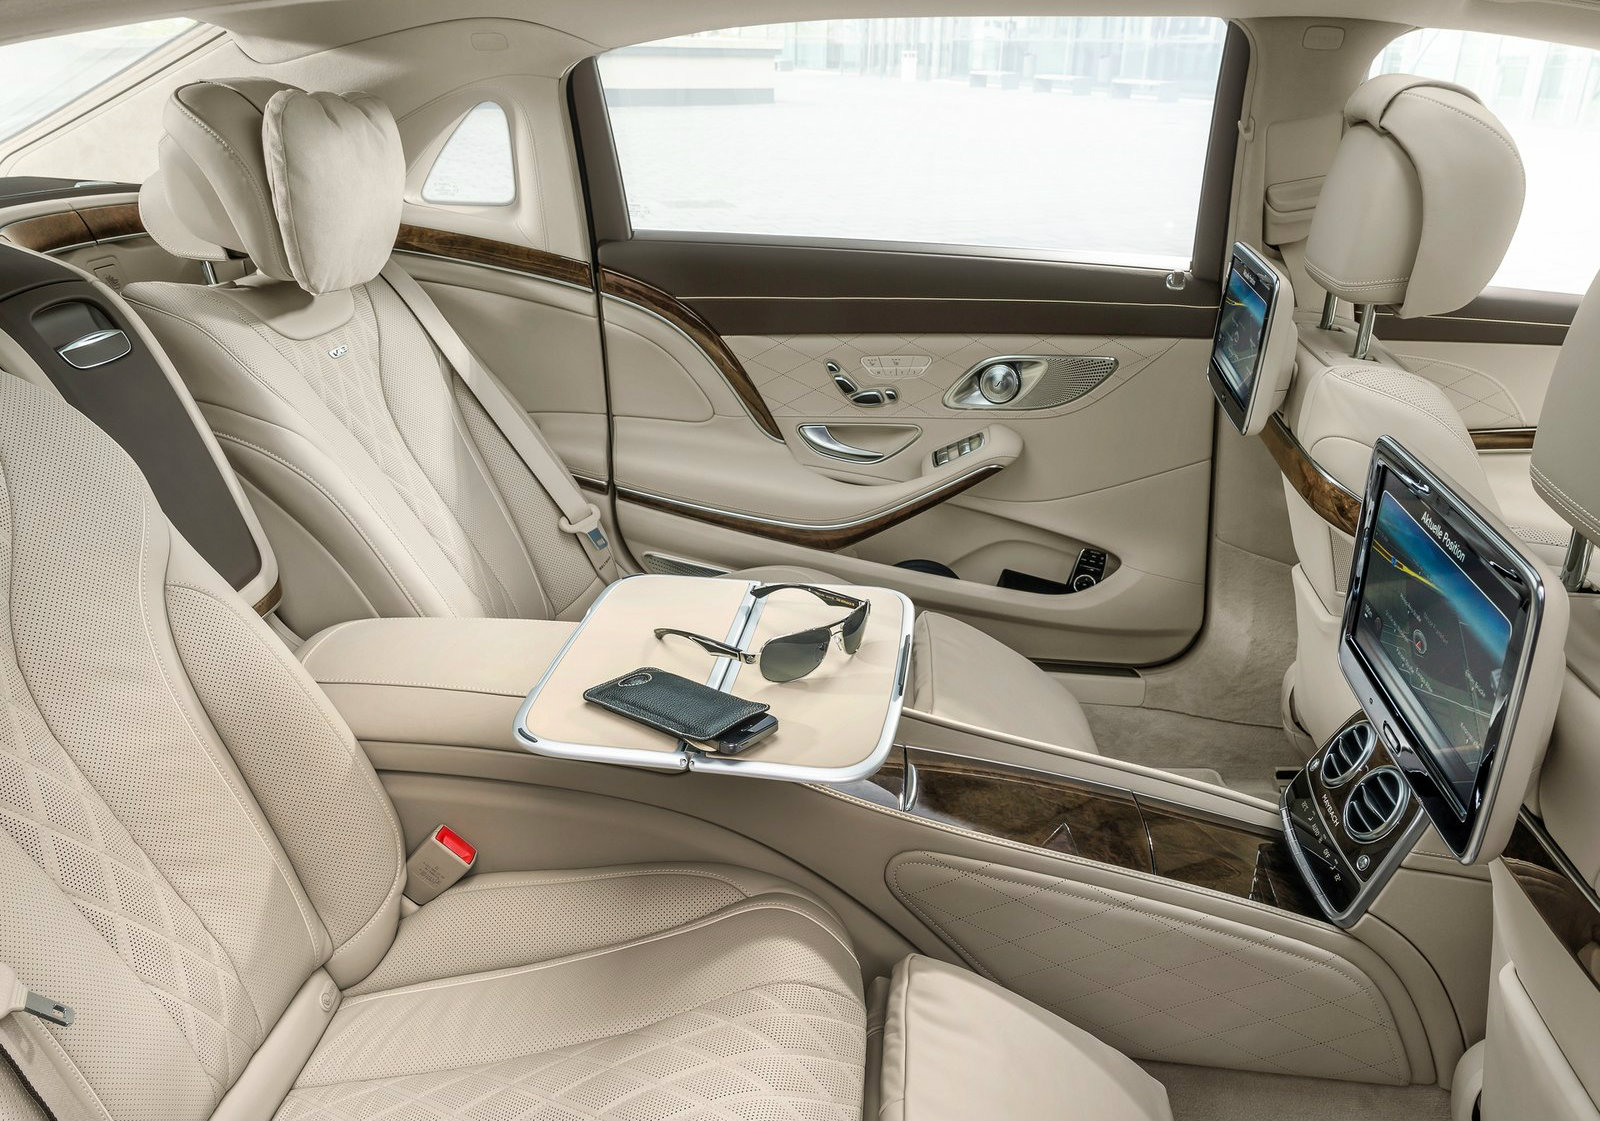 Mercedes maybach s500 priced at 134 053 s600 is 187 841 for Interieur voiture de luxe